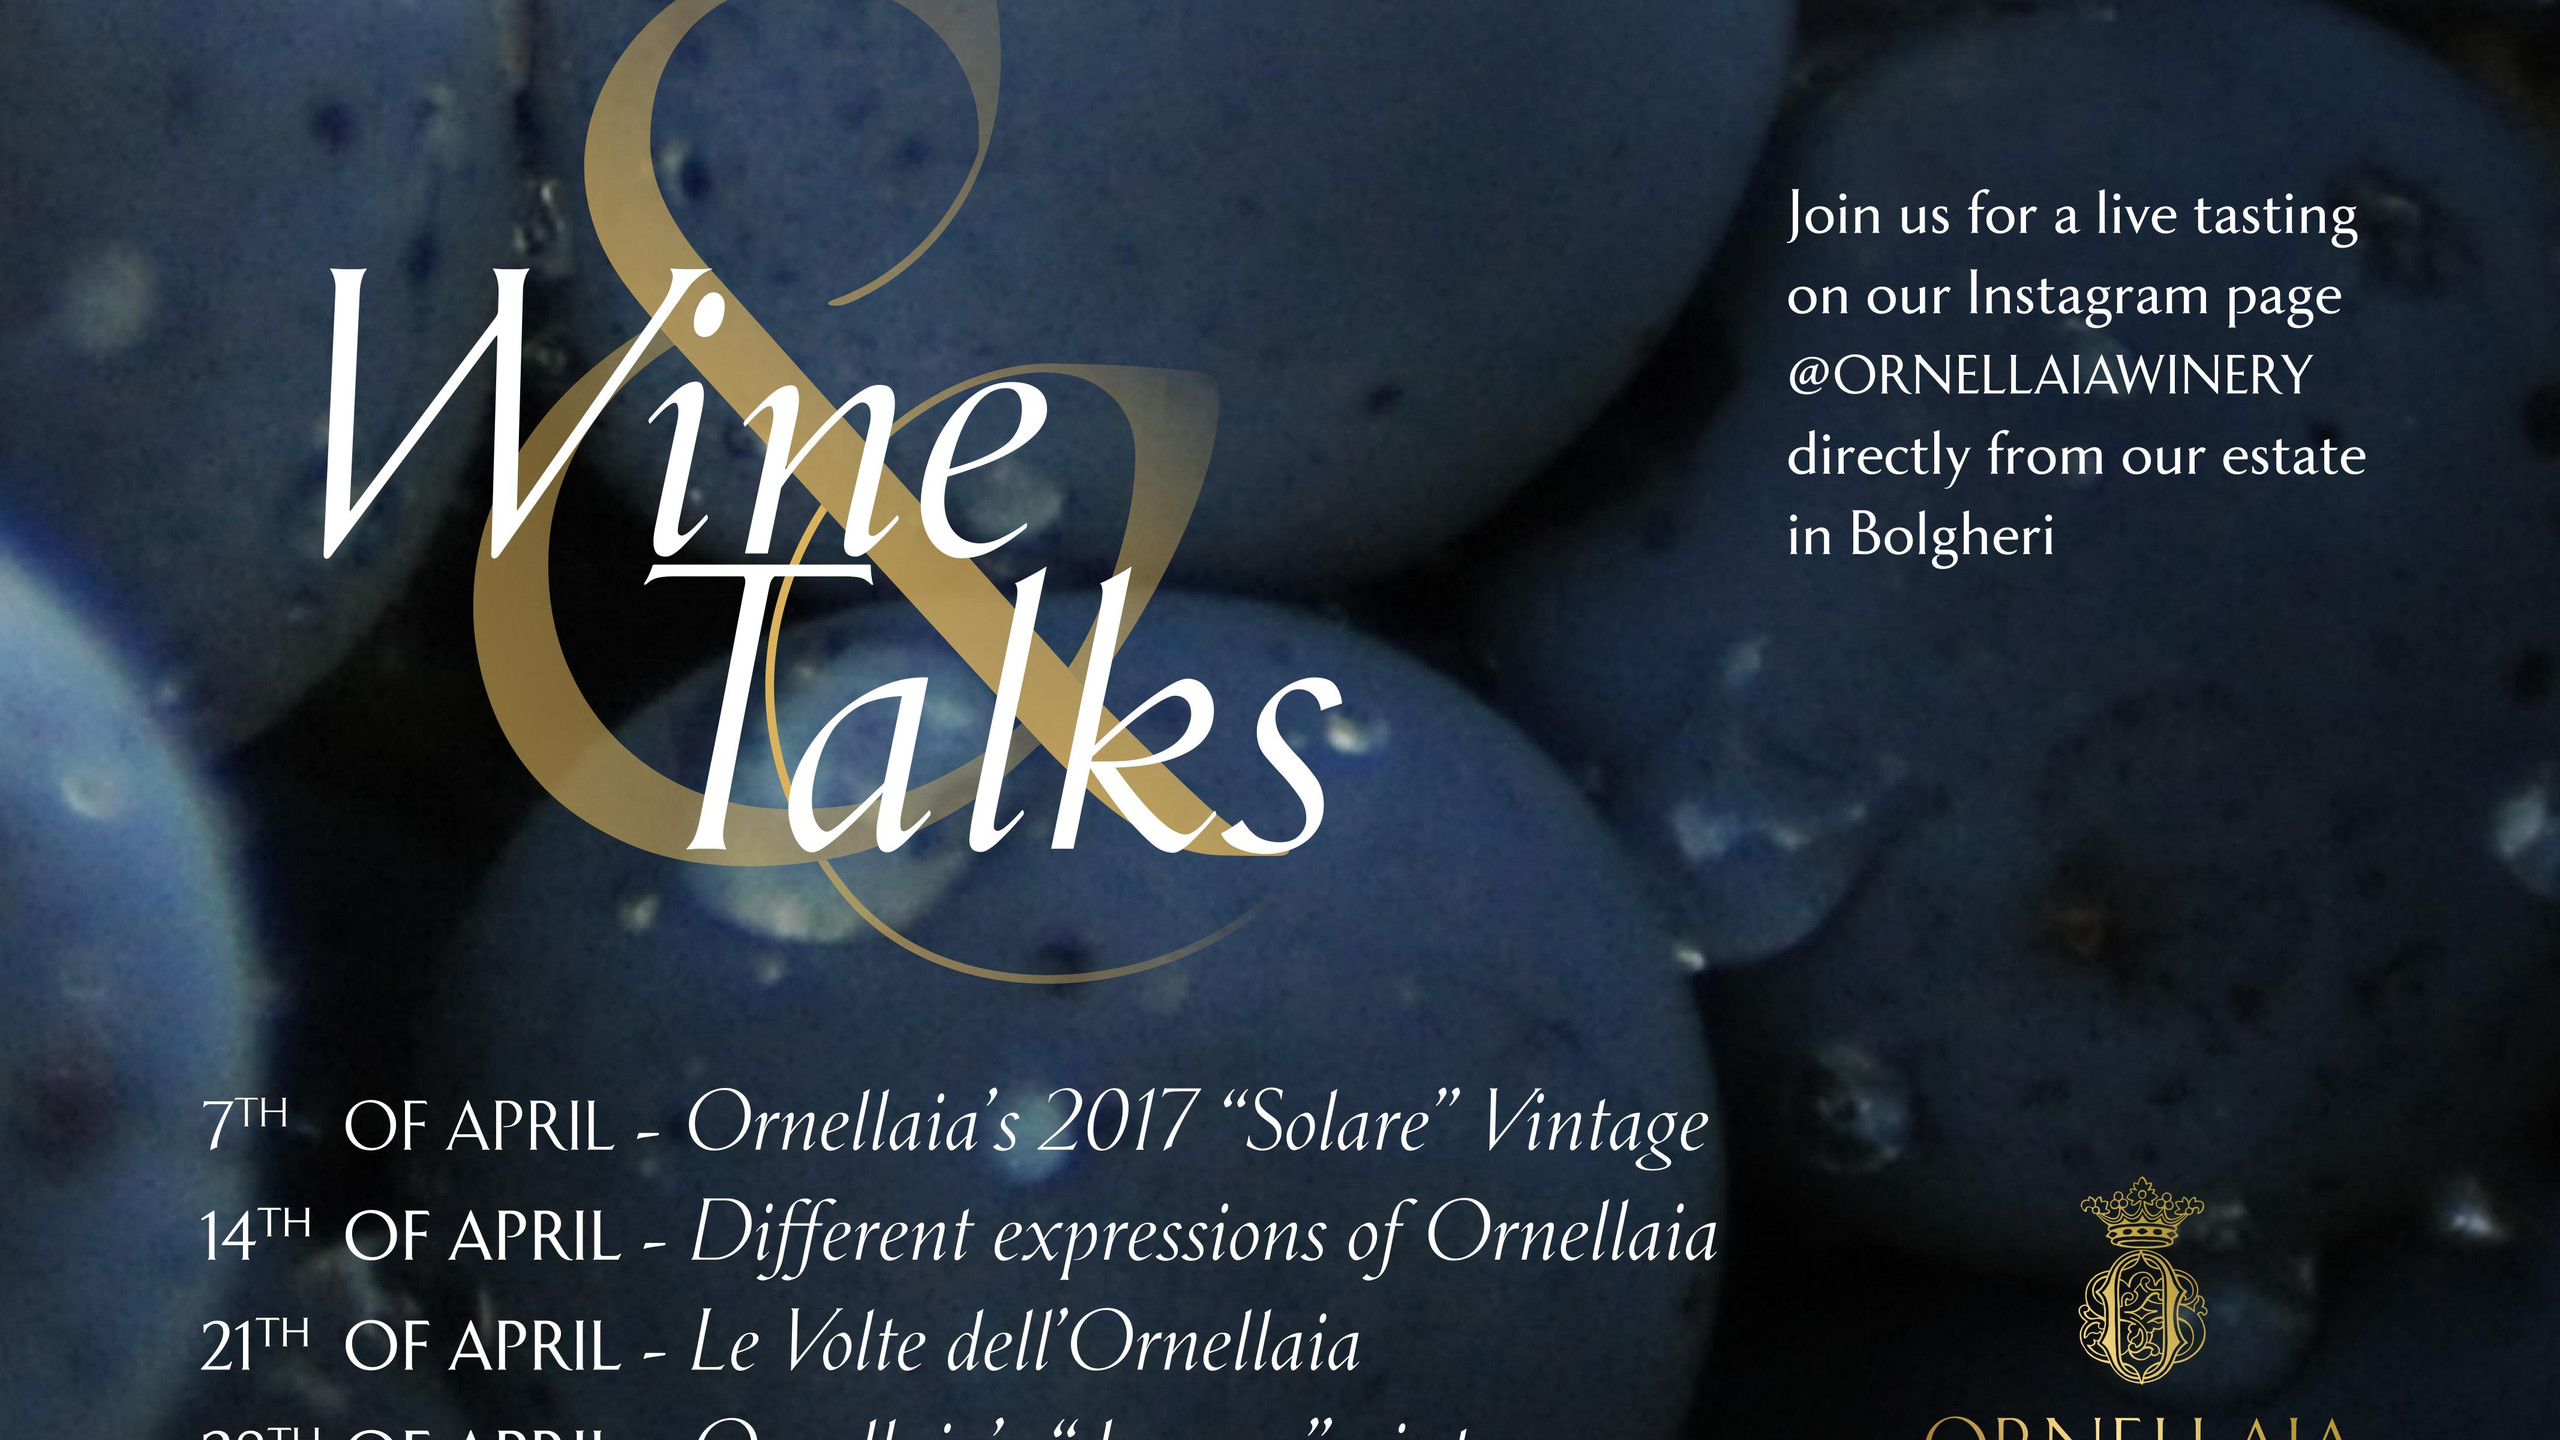 Ornellaia Wine & Talks